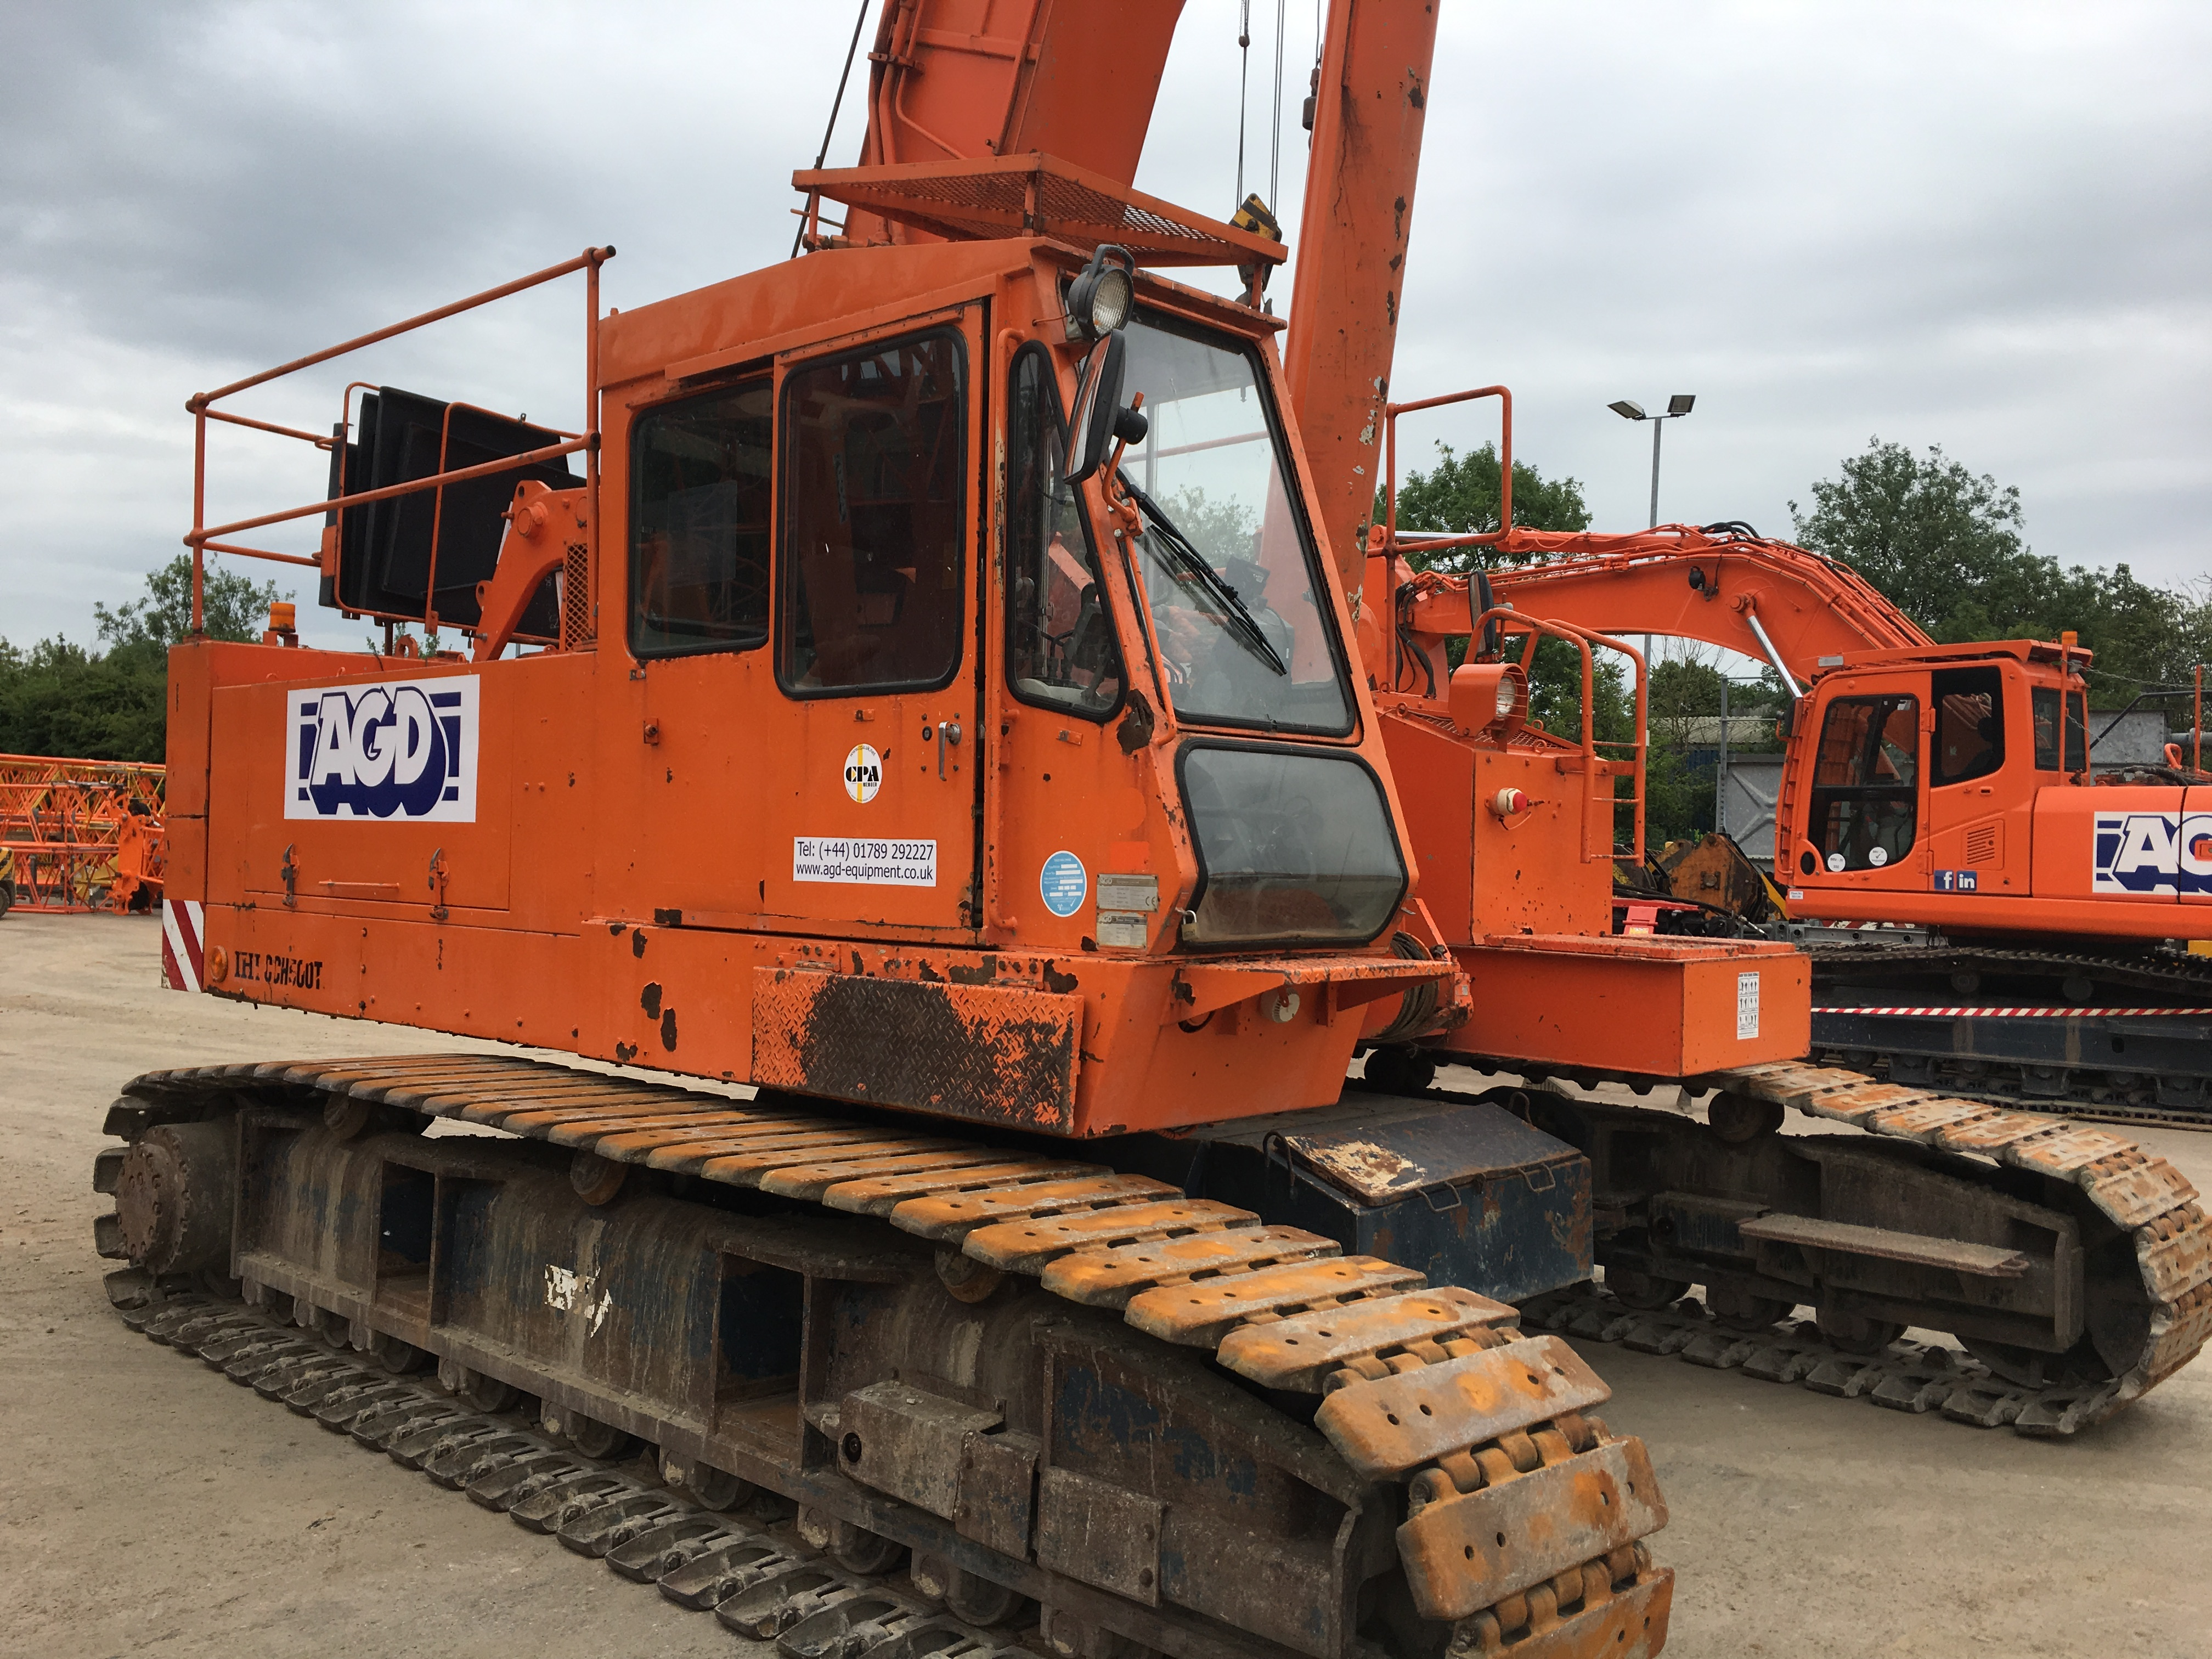 Used IHI CCH500T 50 tons telescopic crawler crane for sale